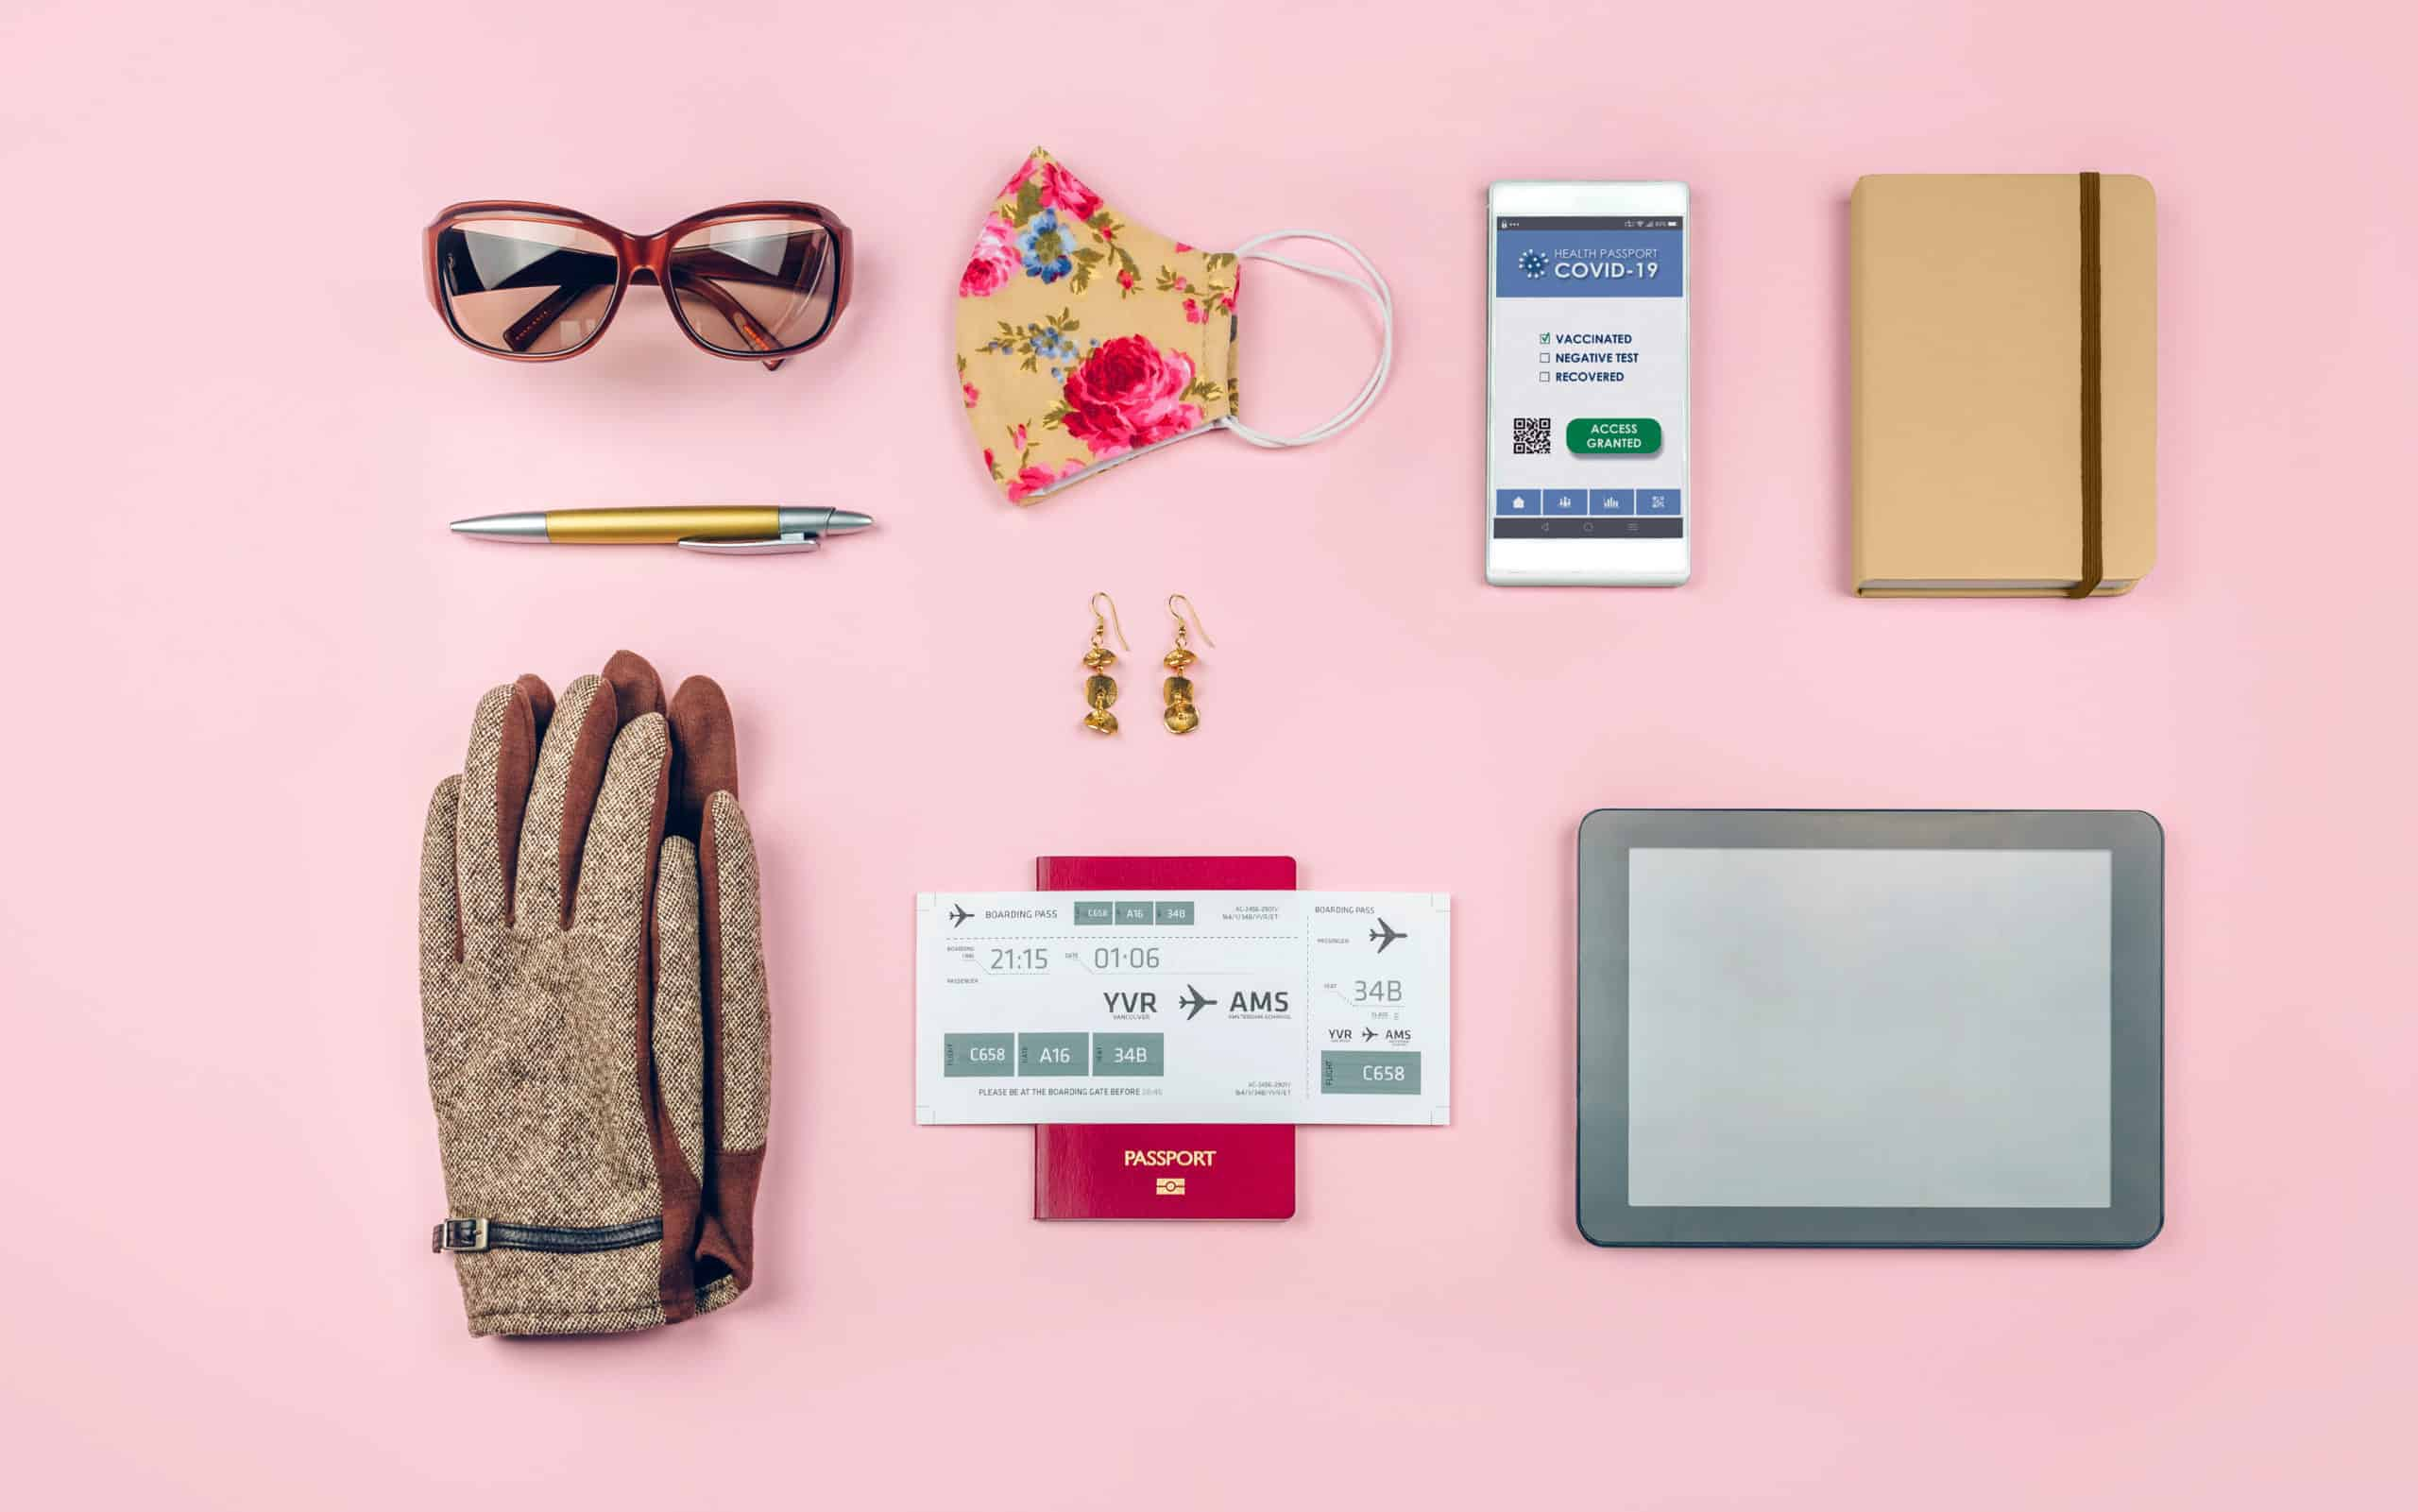 set with mobile covid passport and businesswoman t SHWYAKT Envato Elements scaled